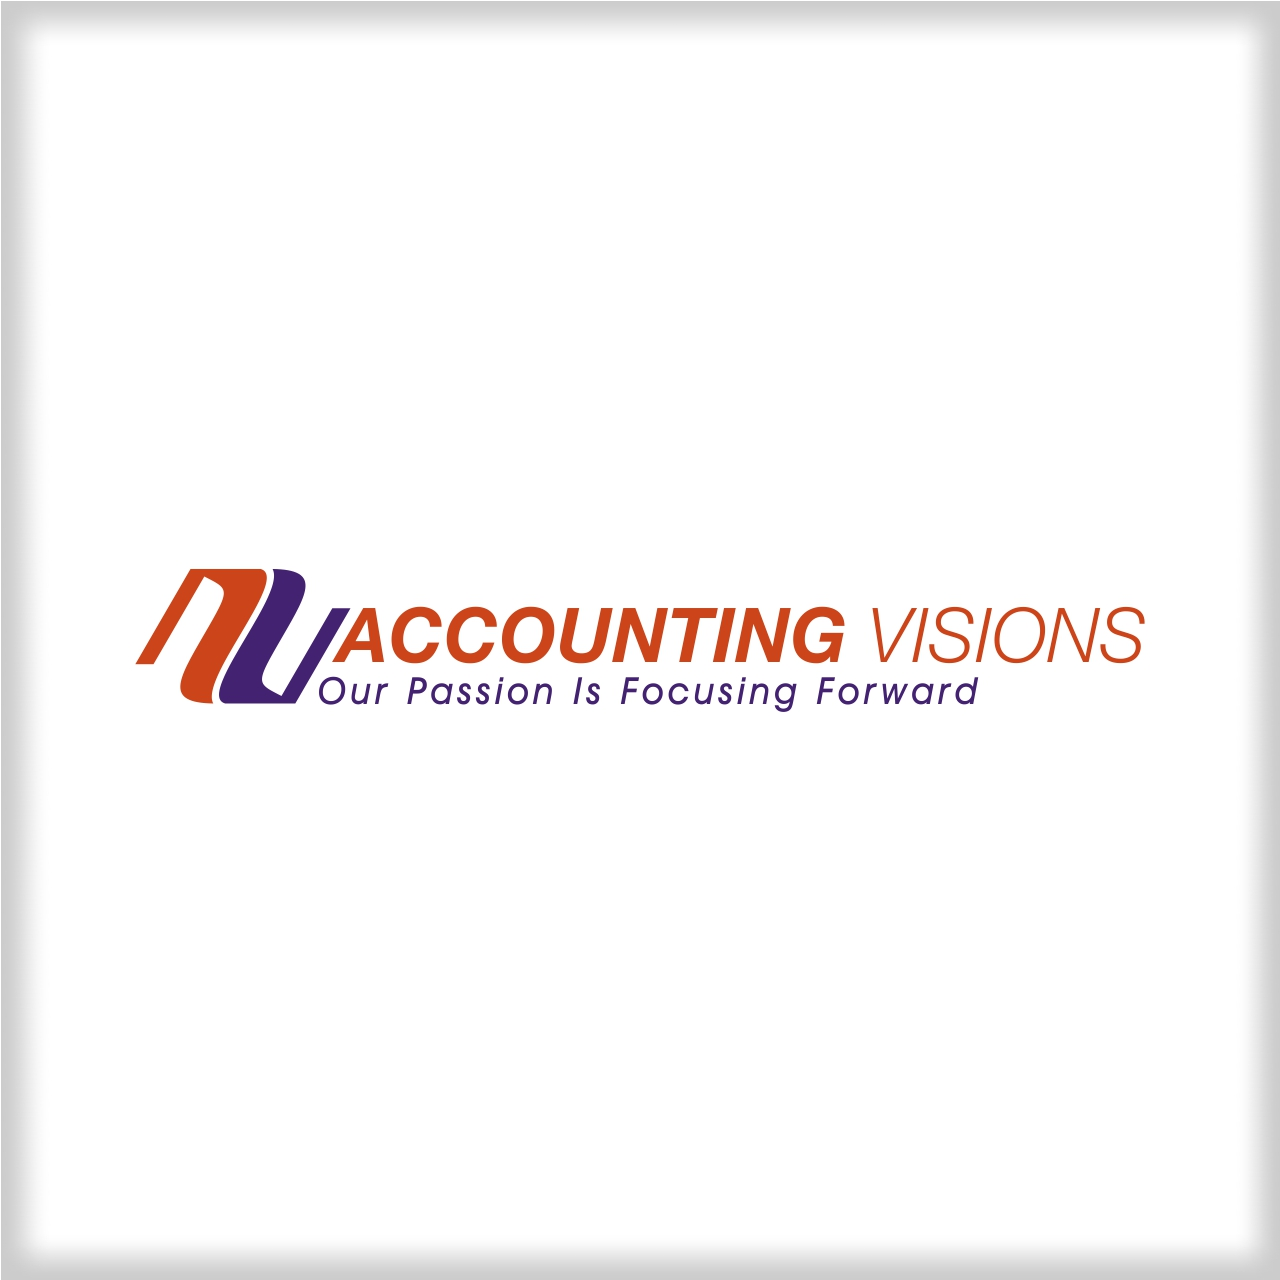 Logo Design by martinz - Entry No. 21 in the Logo Design Contest Accounting Visions.